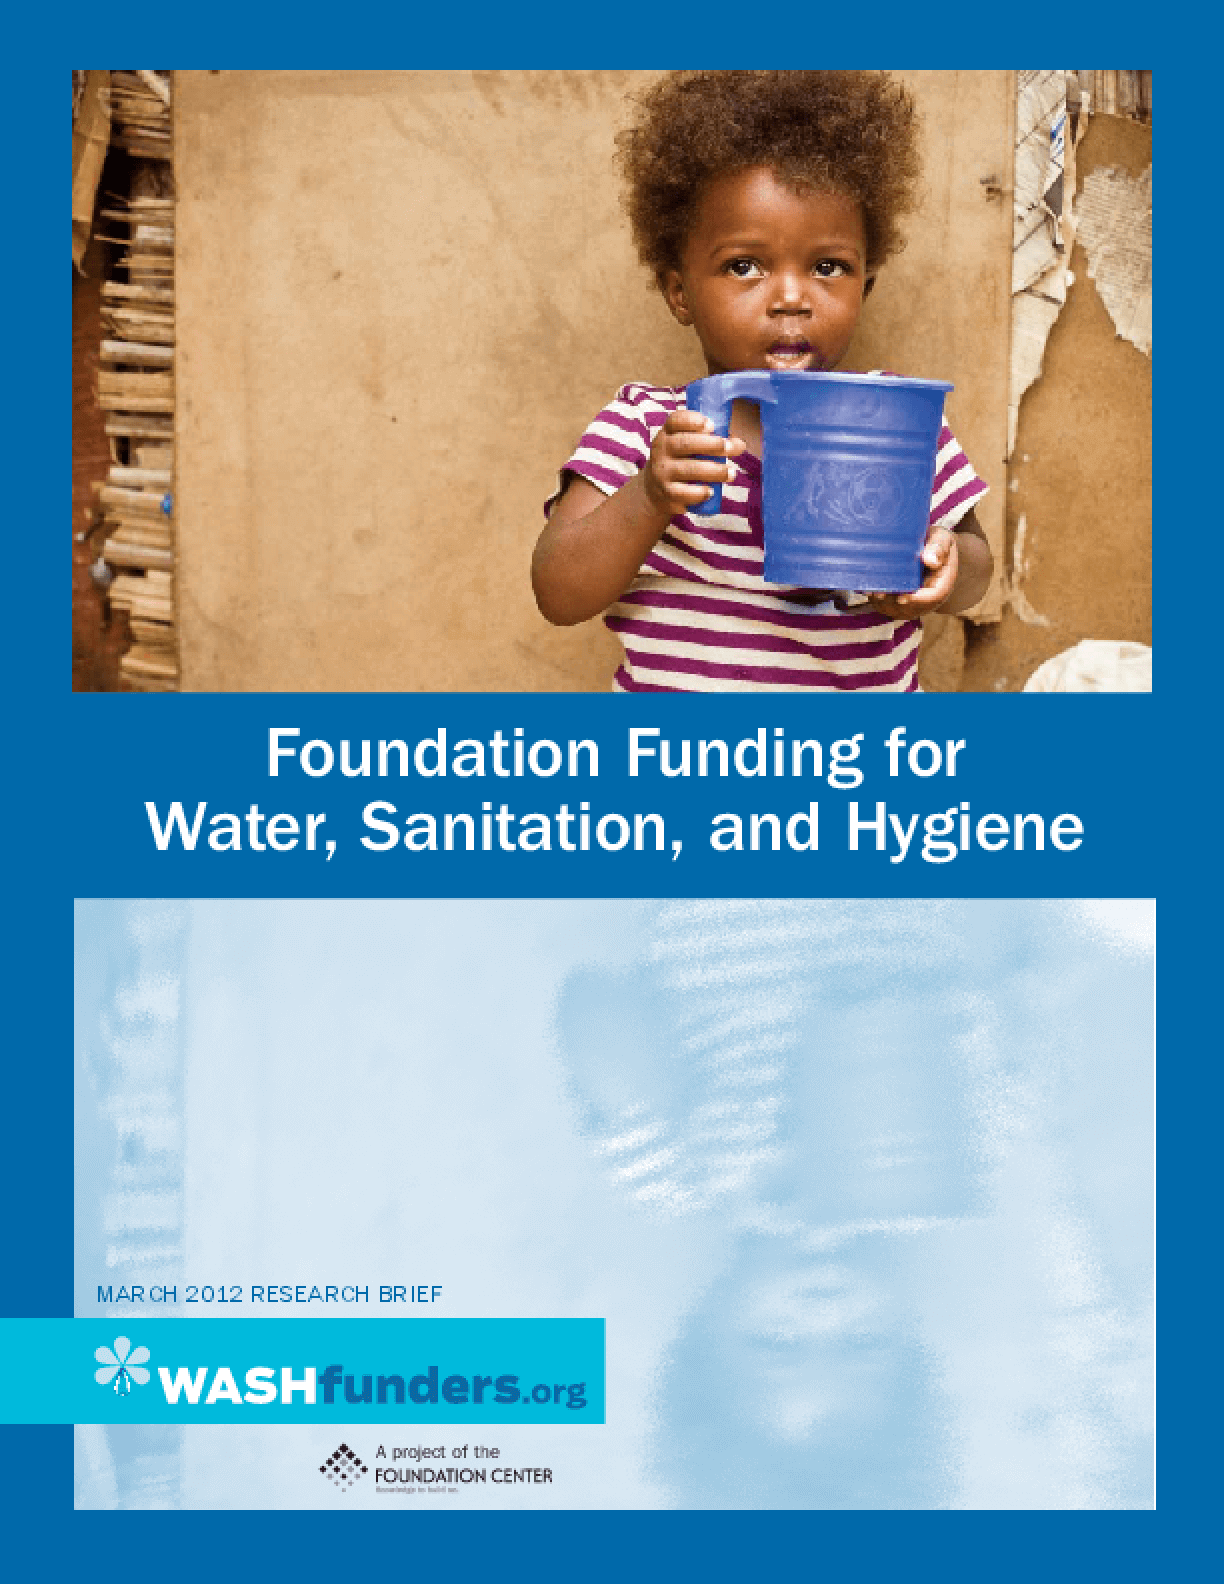 Foundation Funding for Water, Sanitation, and Hygiene